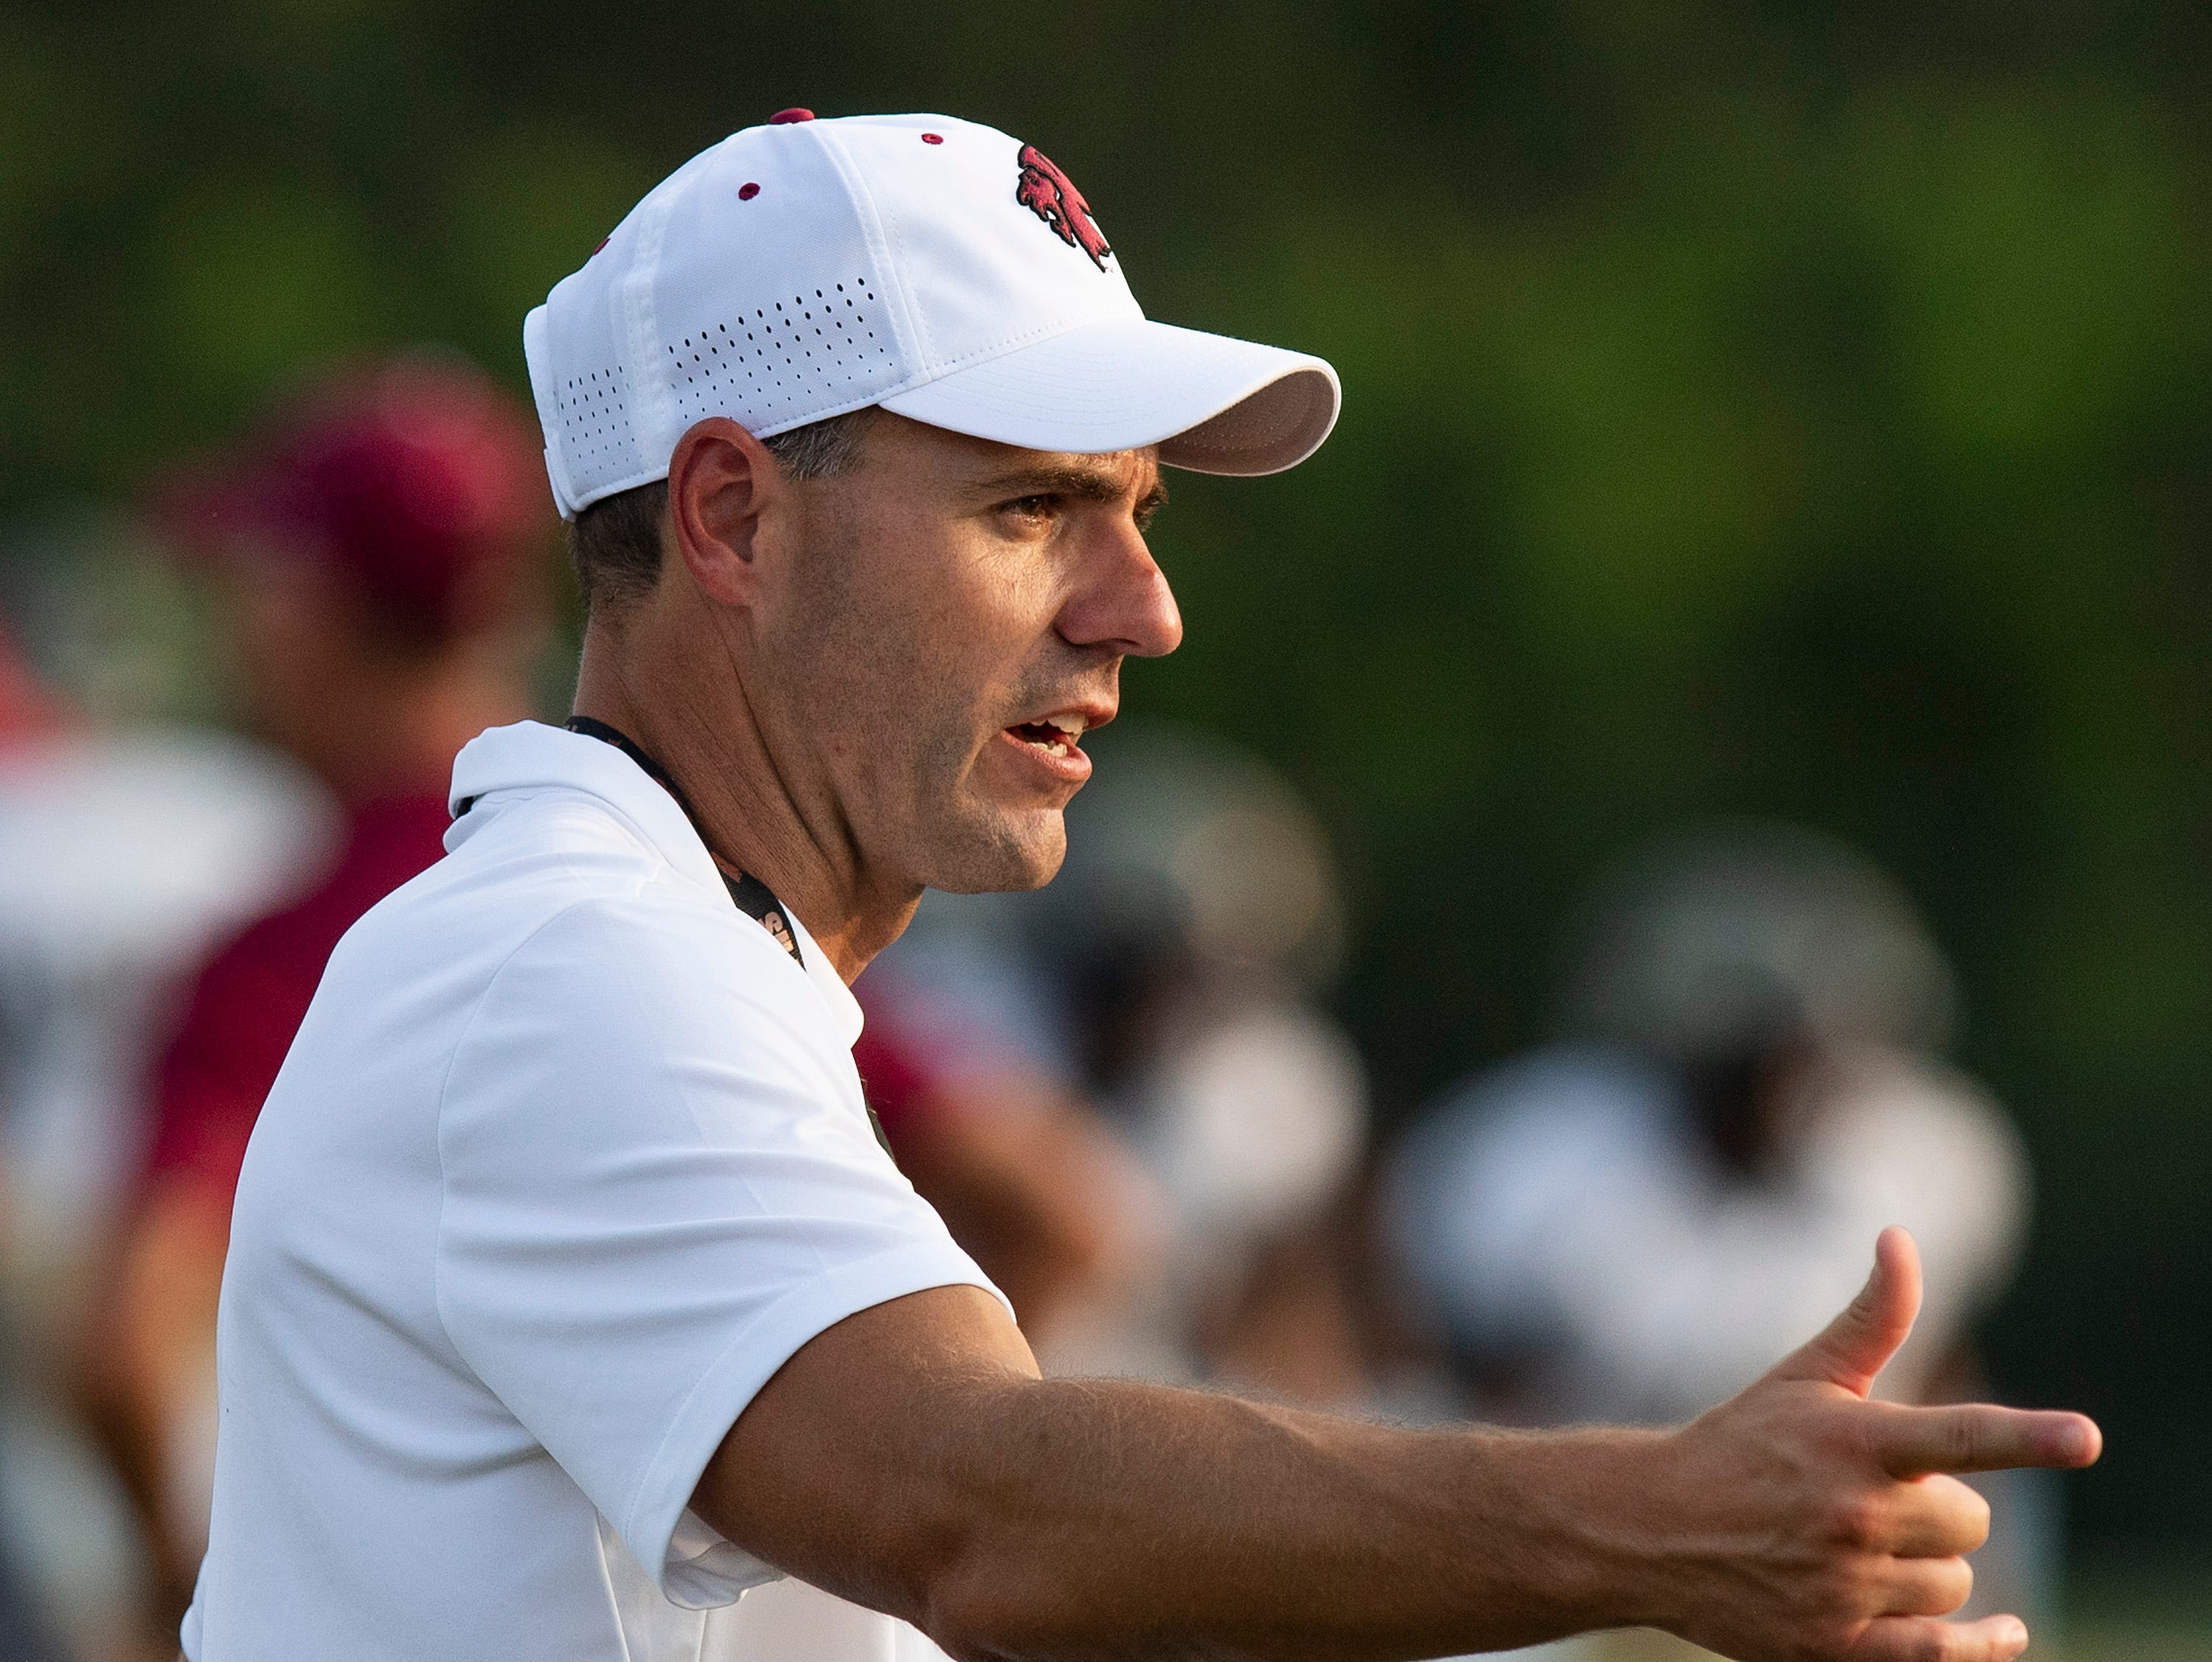 Prattville coach h Caleb Ross before the Foley game at Stanley-Jensen Stadium in Prattville, Ala., on Friday August 24, 2018.